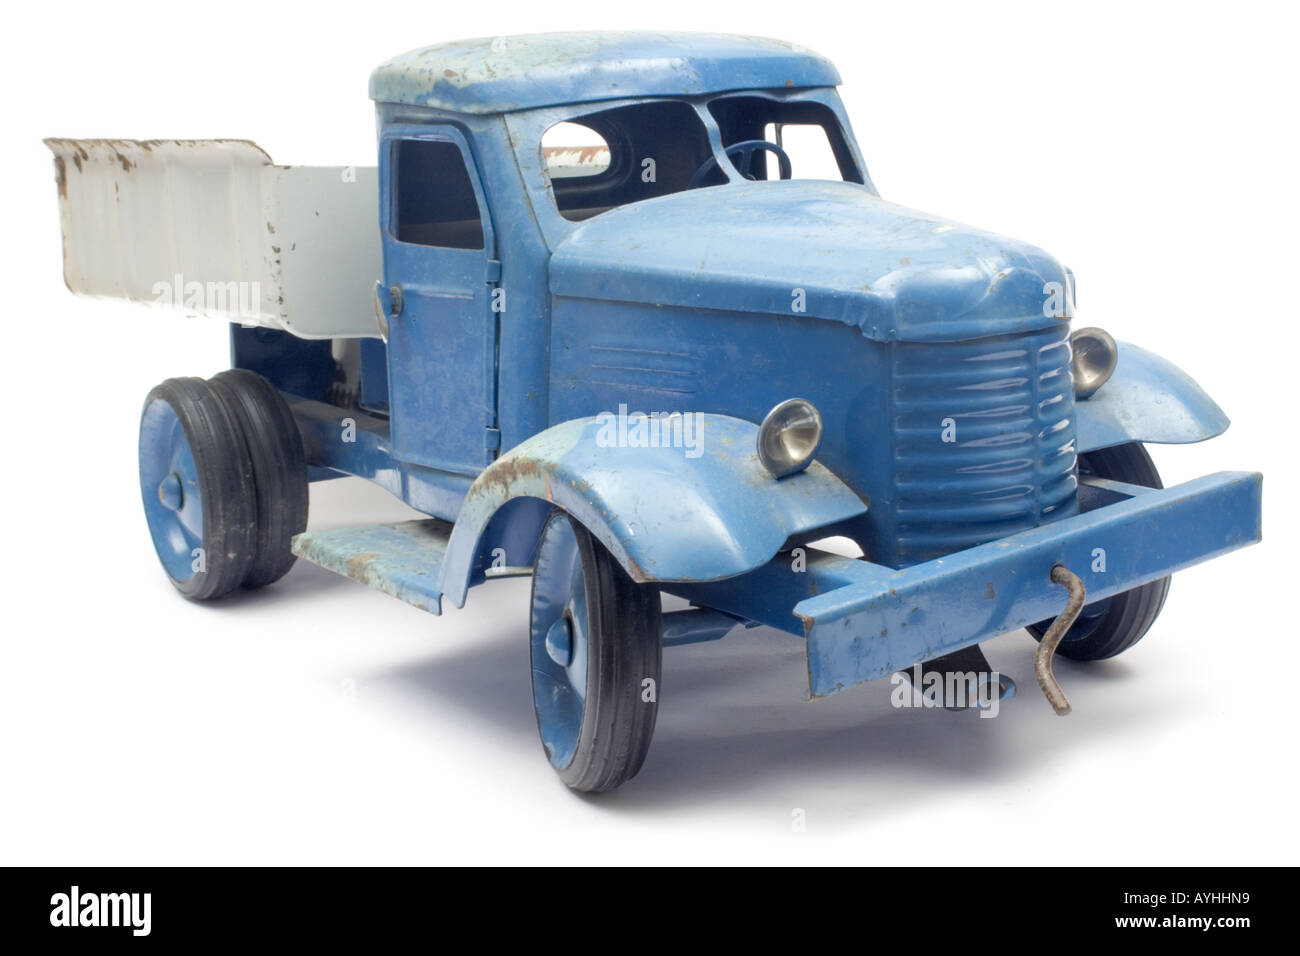 Blue Toy Truck - Stock Image